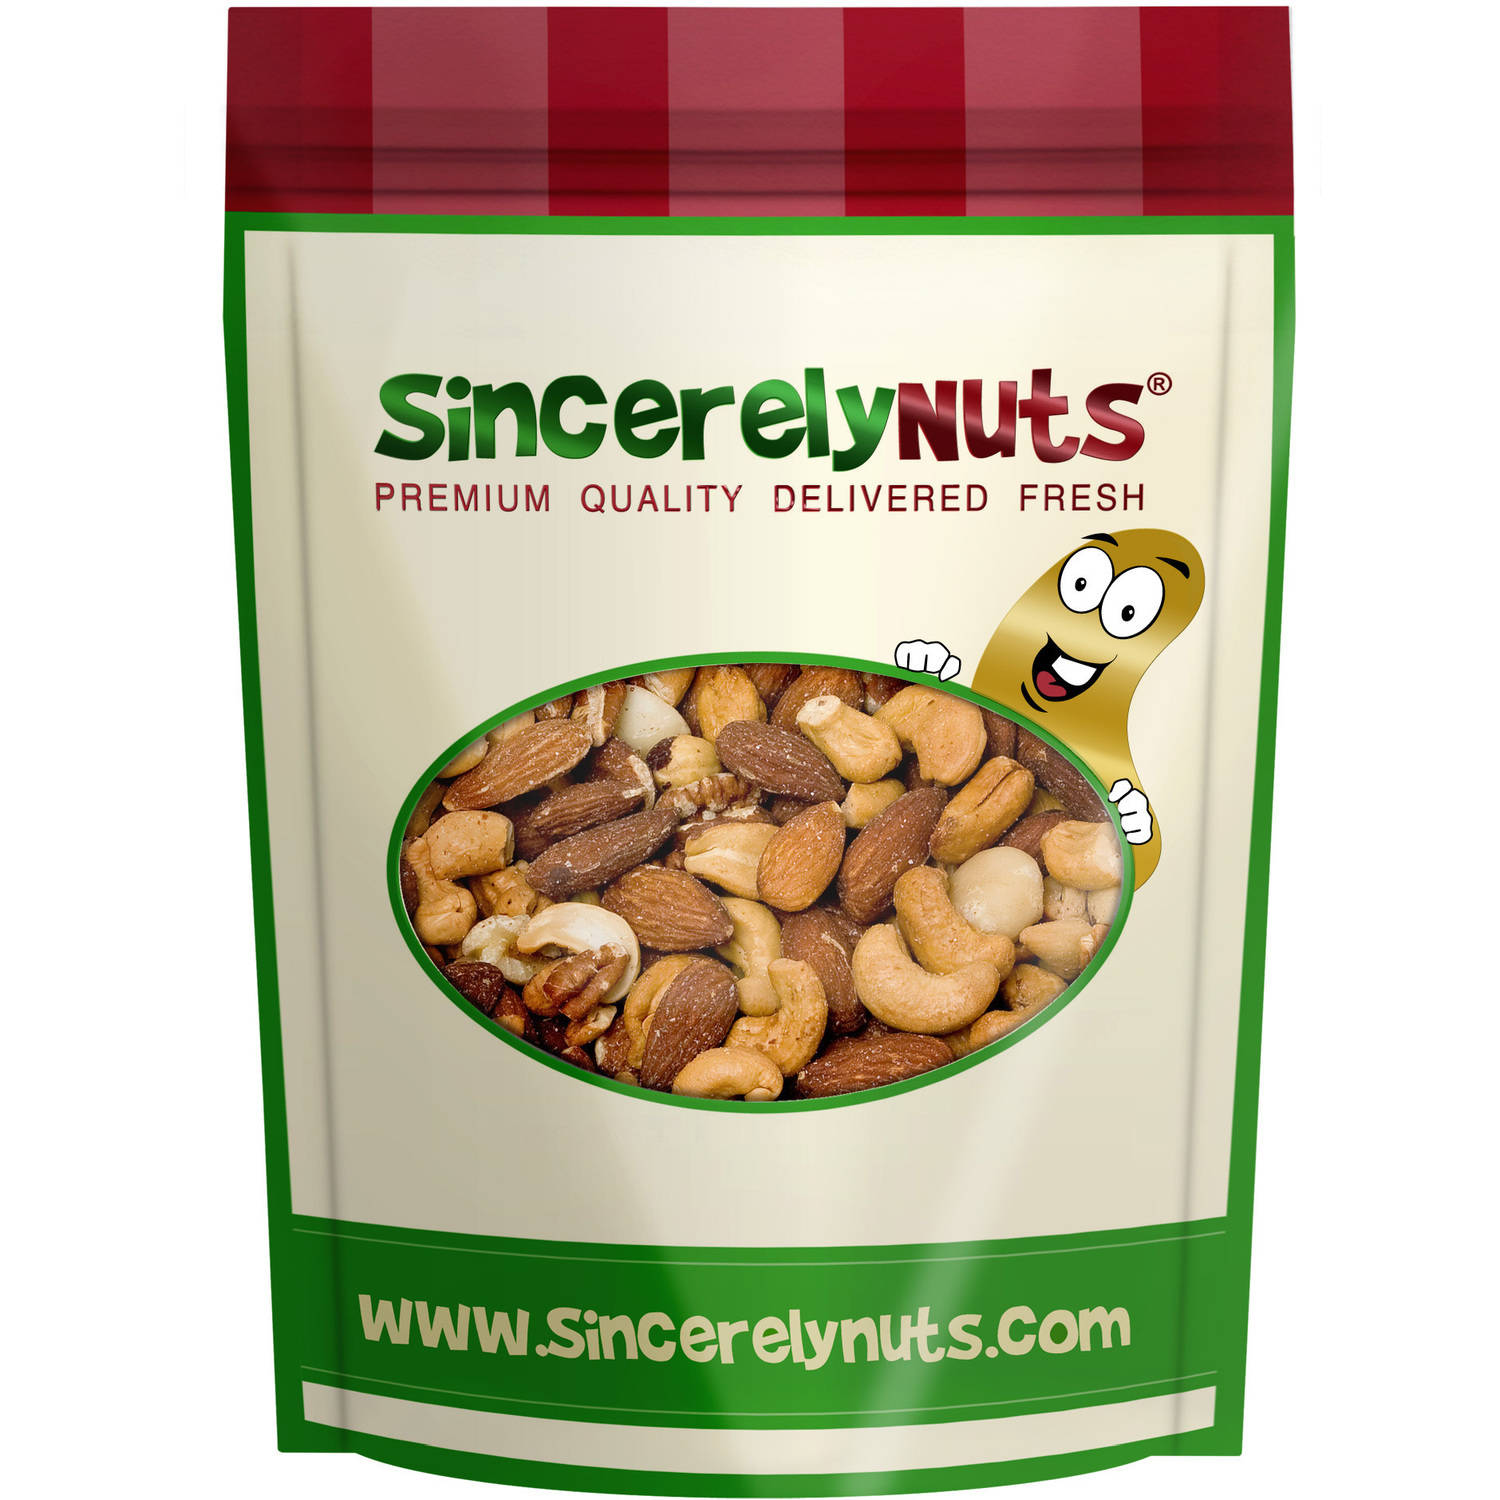 Sincerely Nuts Mixed Nuts Roasted Unsalted, 2 LB Bag by Sincerely Nuts